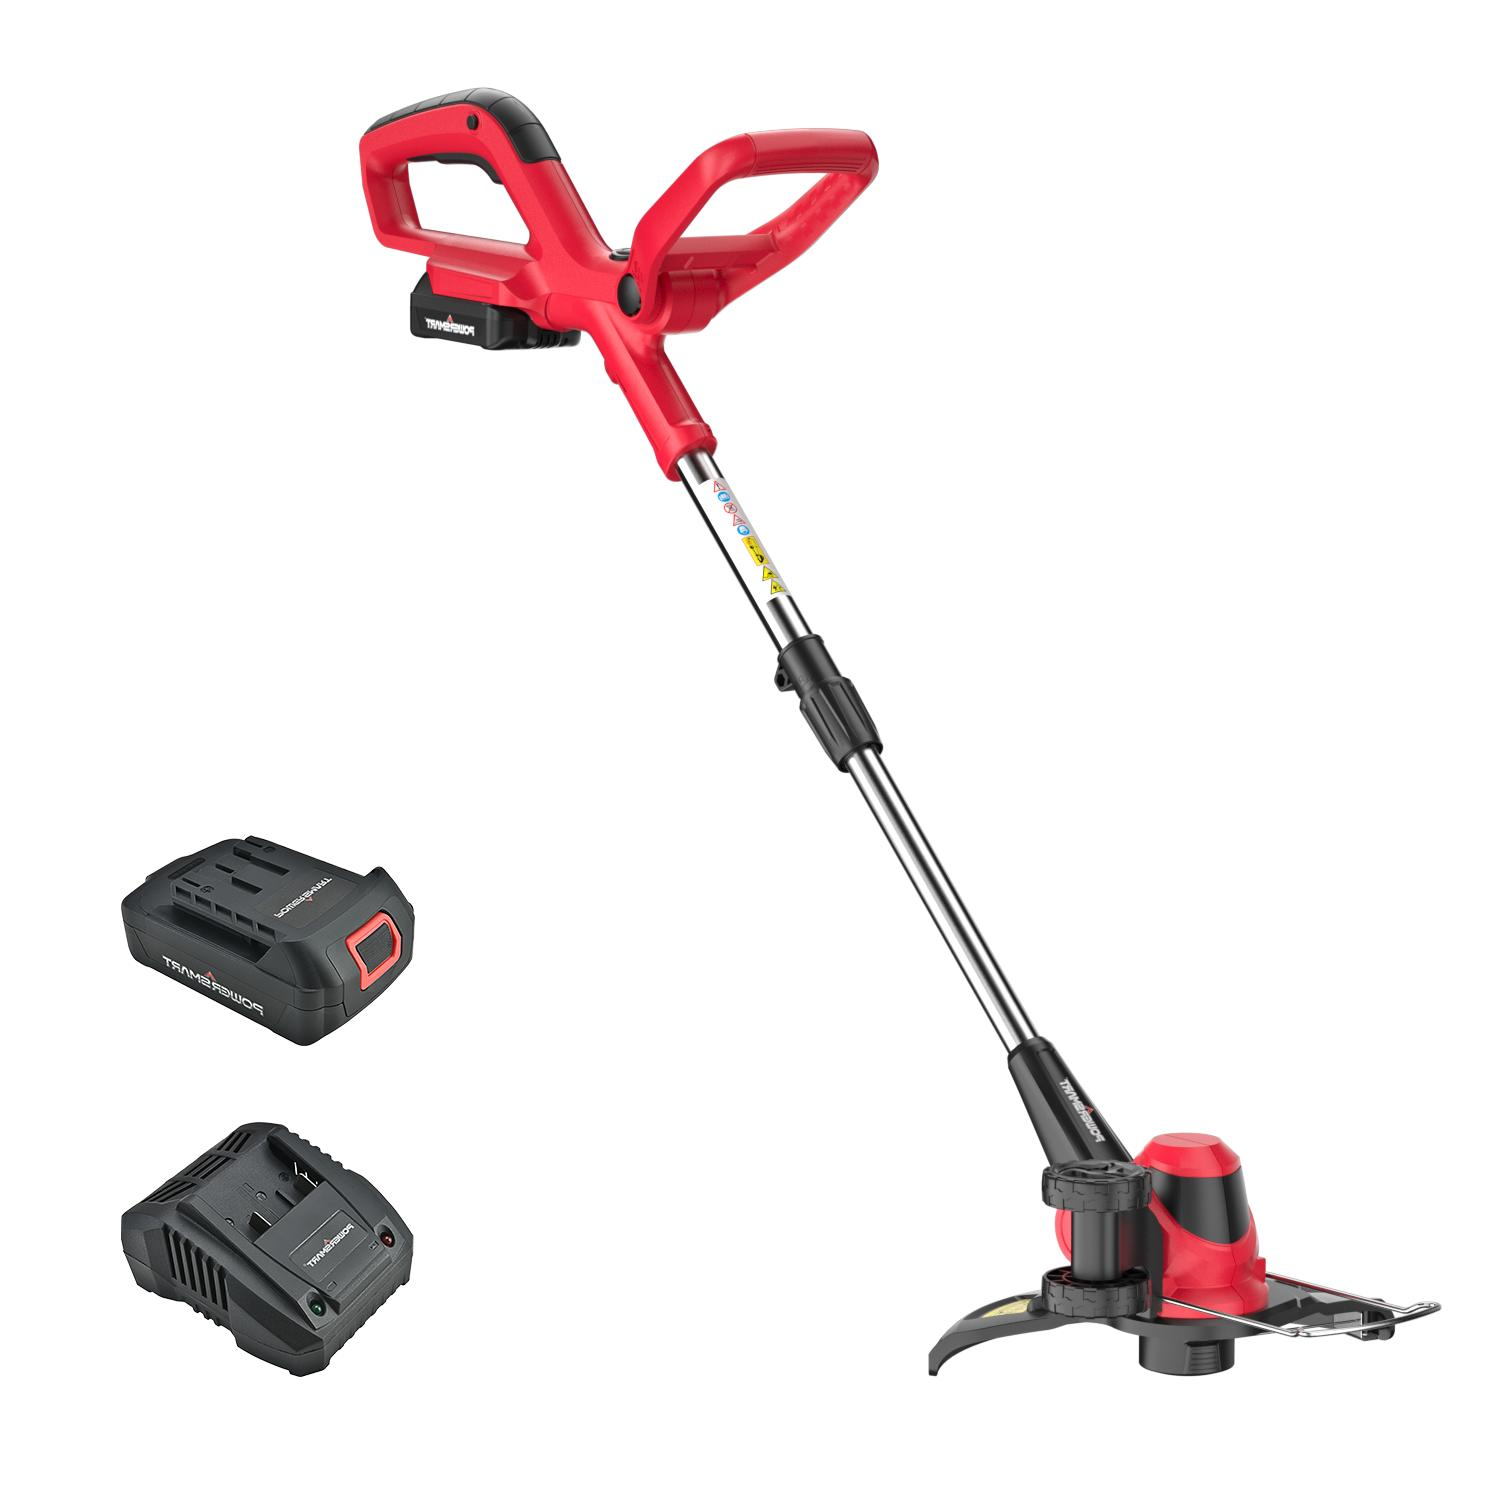 ps76110a cordless string trimmer